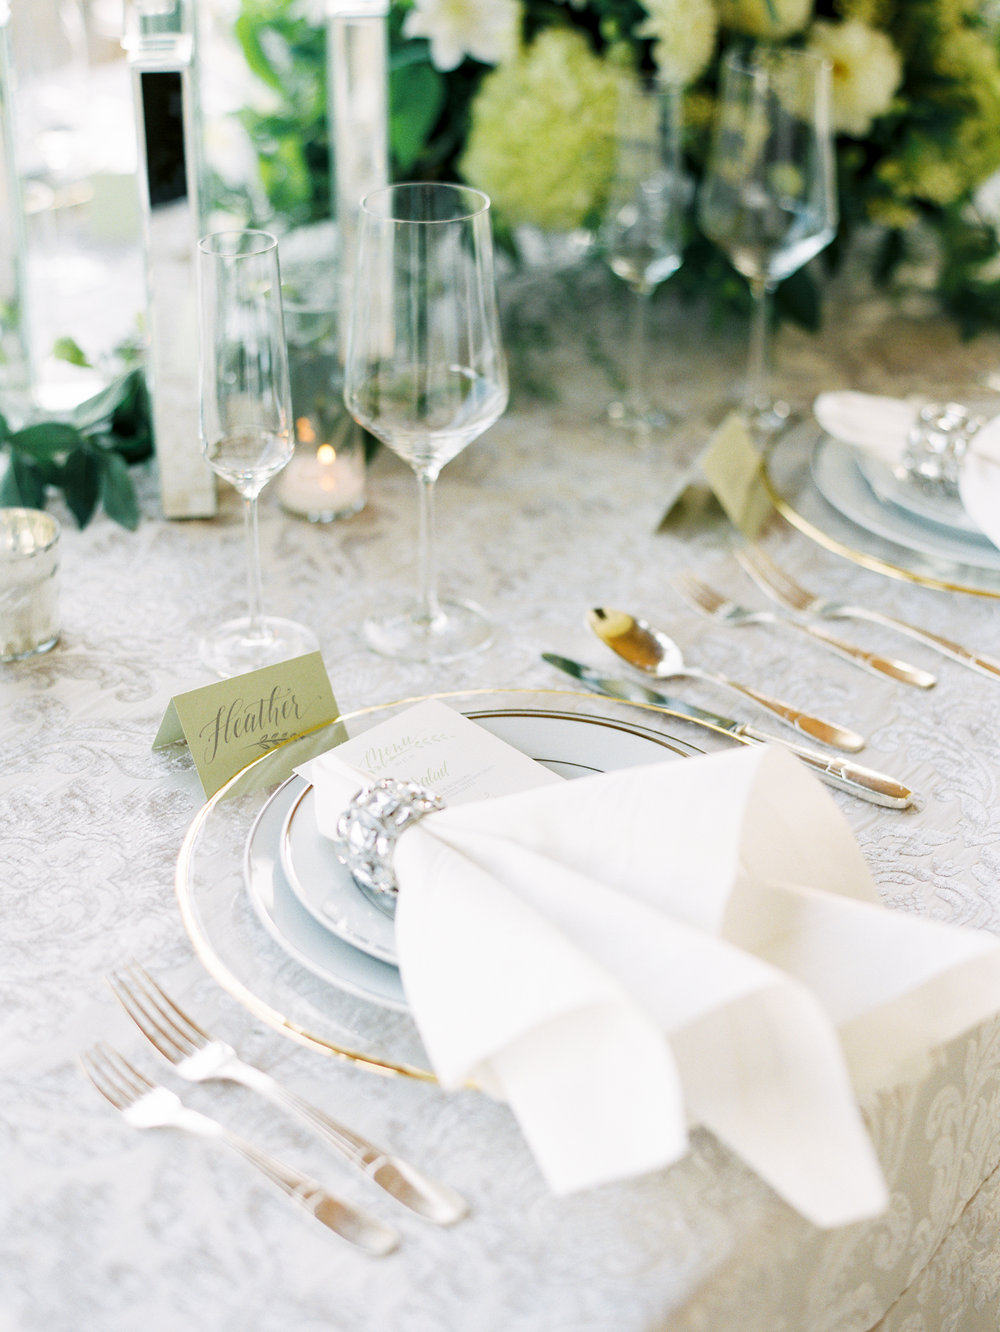 Fine art green and white wedding inspiration by Columbus, Ohio wedding planner Meggie Francisco. Photo by Heather Moore.